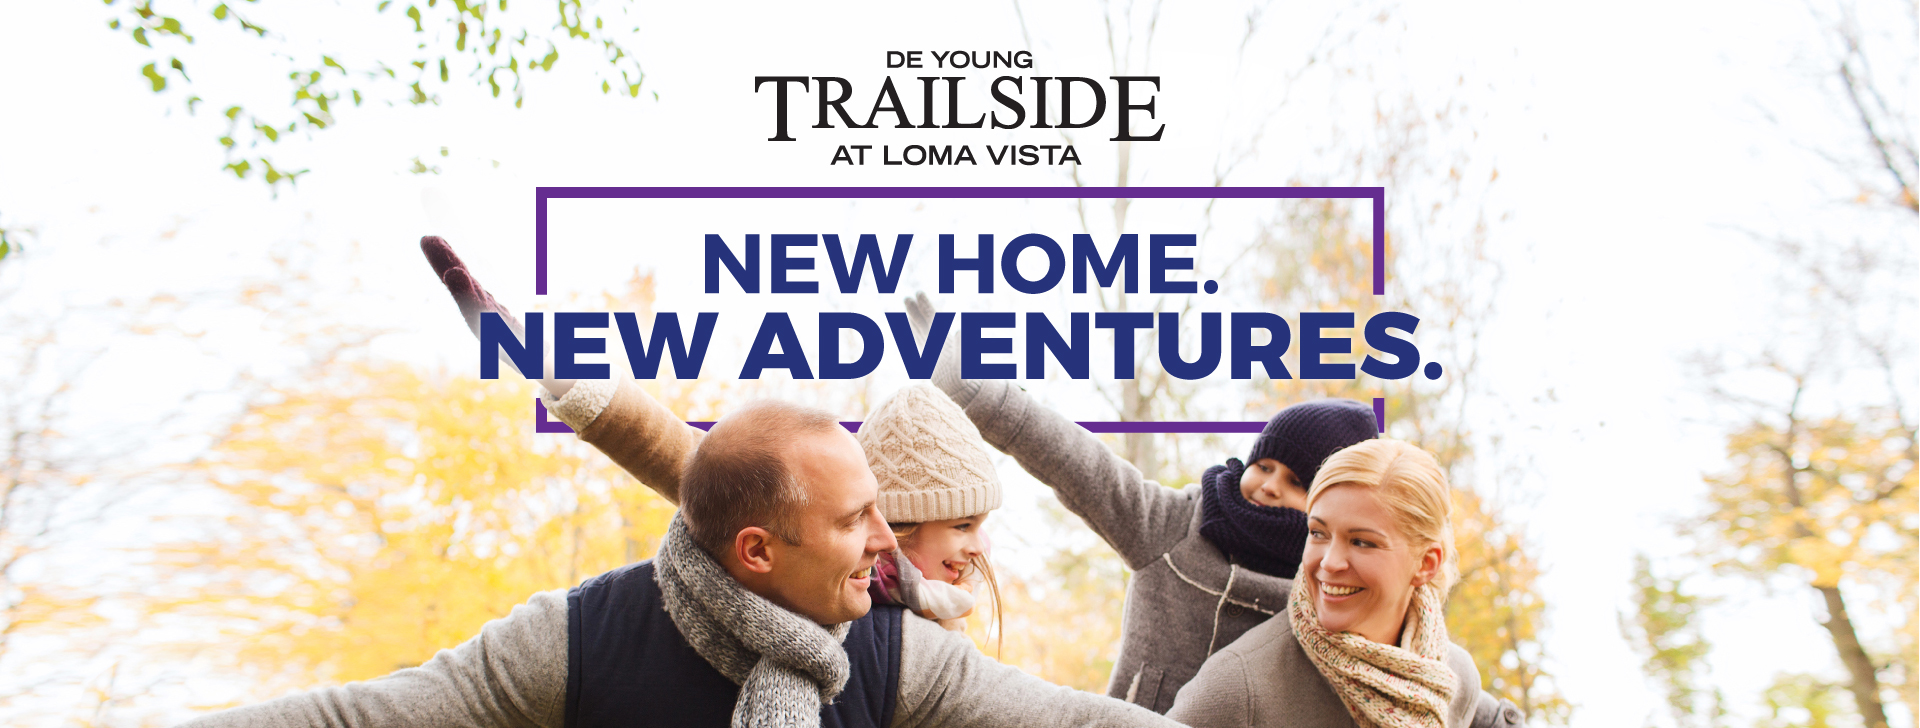 A New Home Brings New Adventures At DeYoung Trailside At Loma Vista, Homes Starting In The 280's!